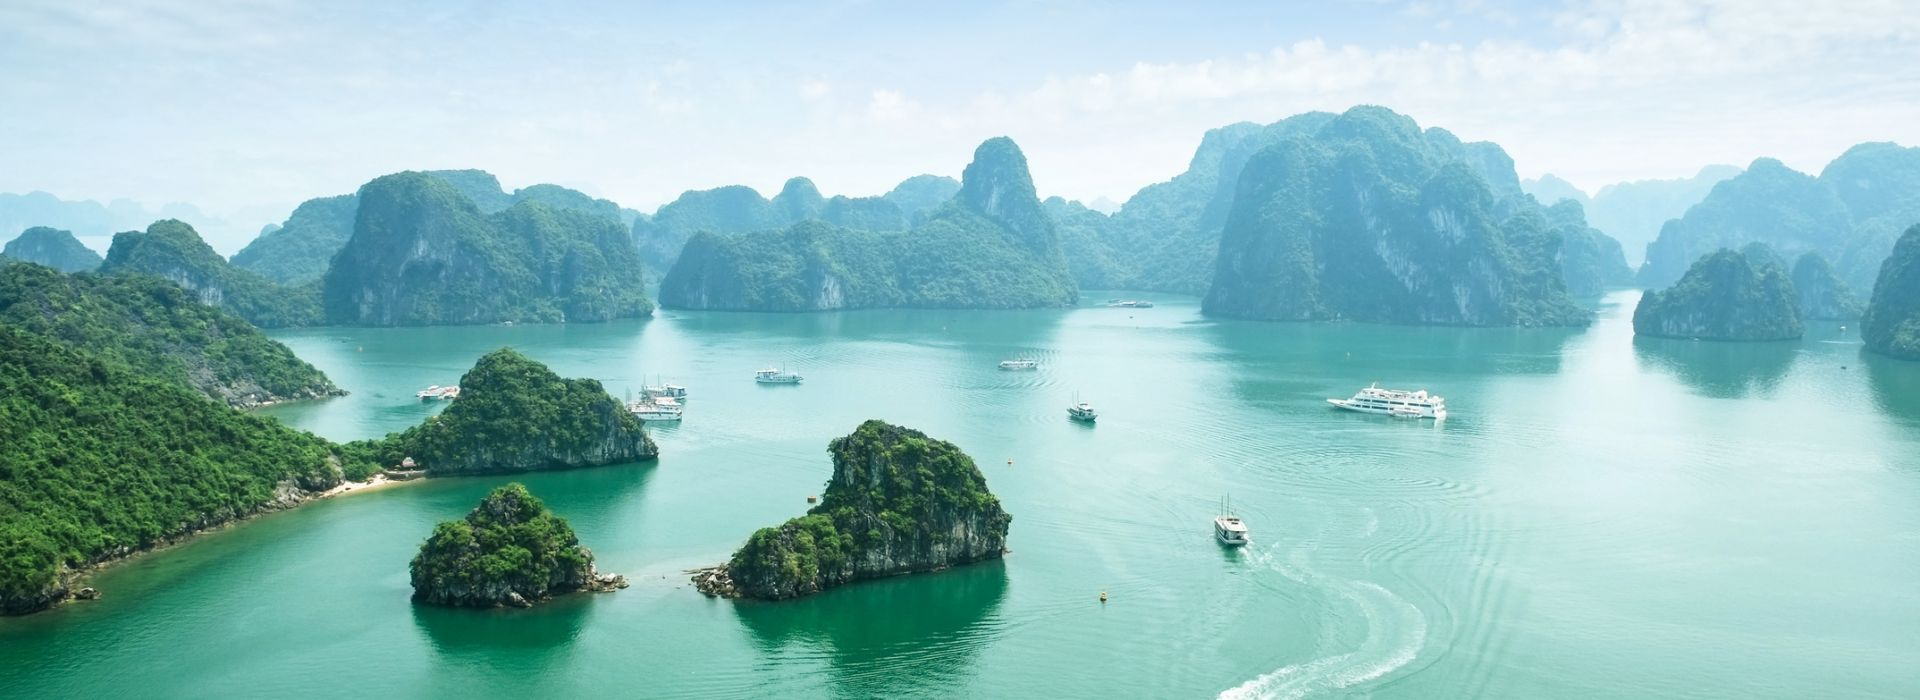 Caves Tours in Halong Bay